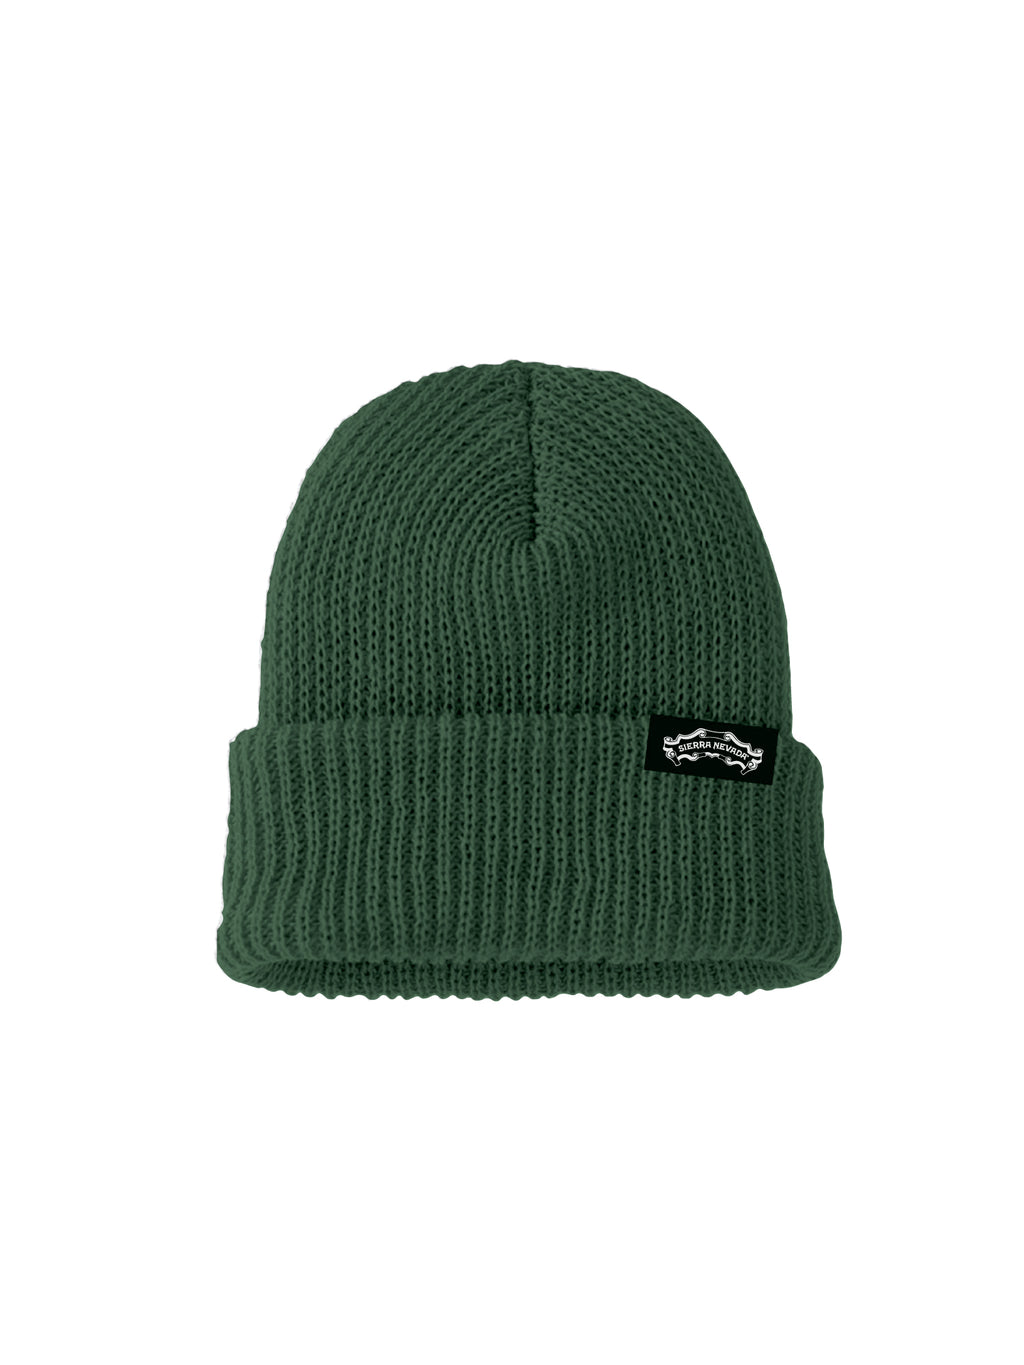 BEANIE- FOREST - Anderson Bros Design and Supply